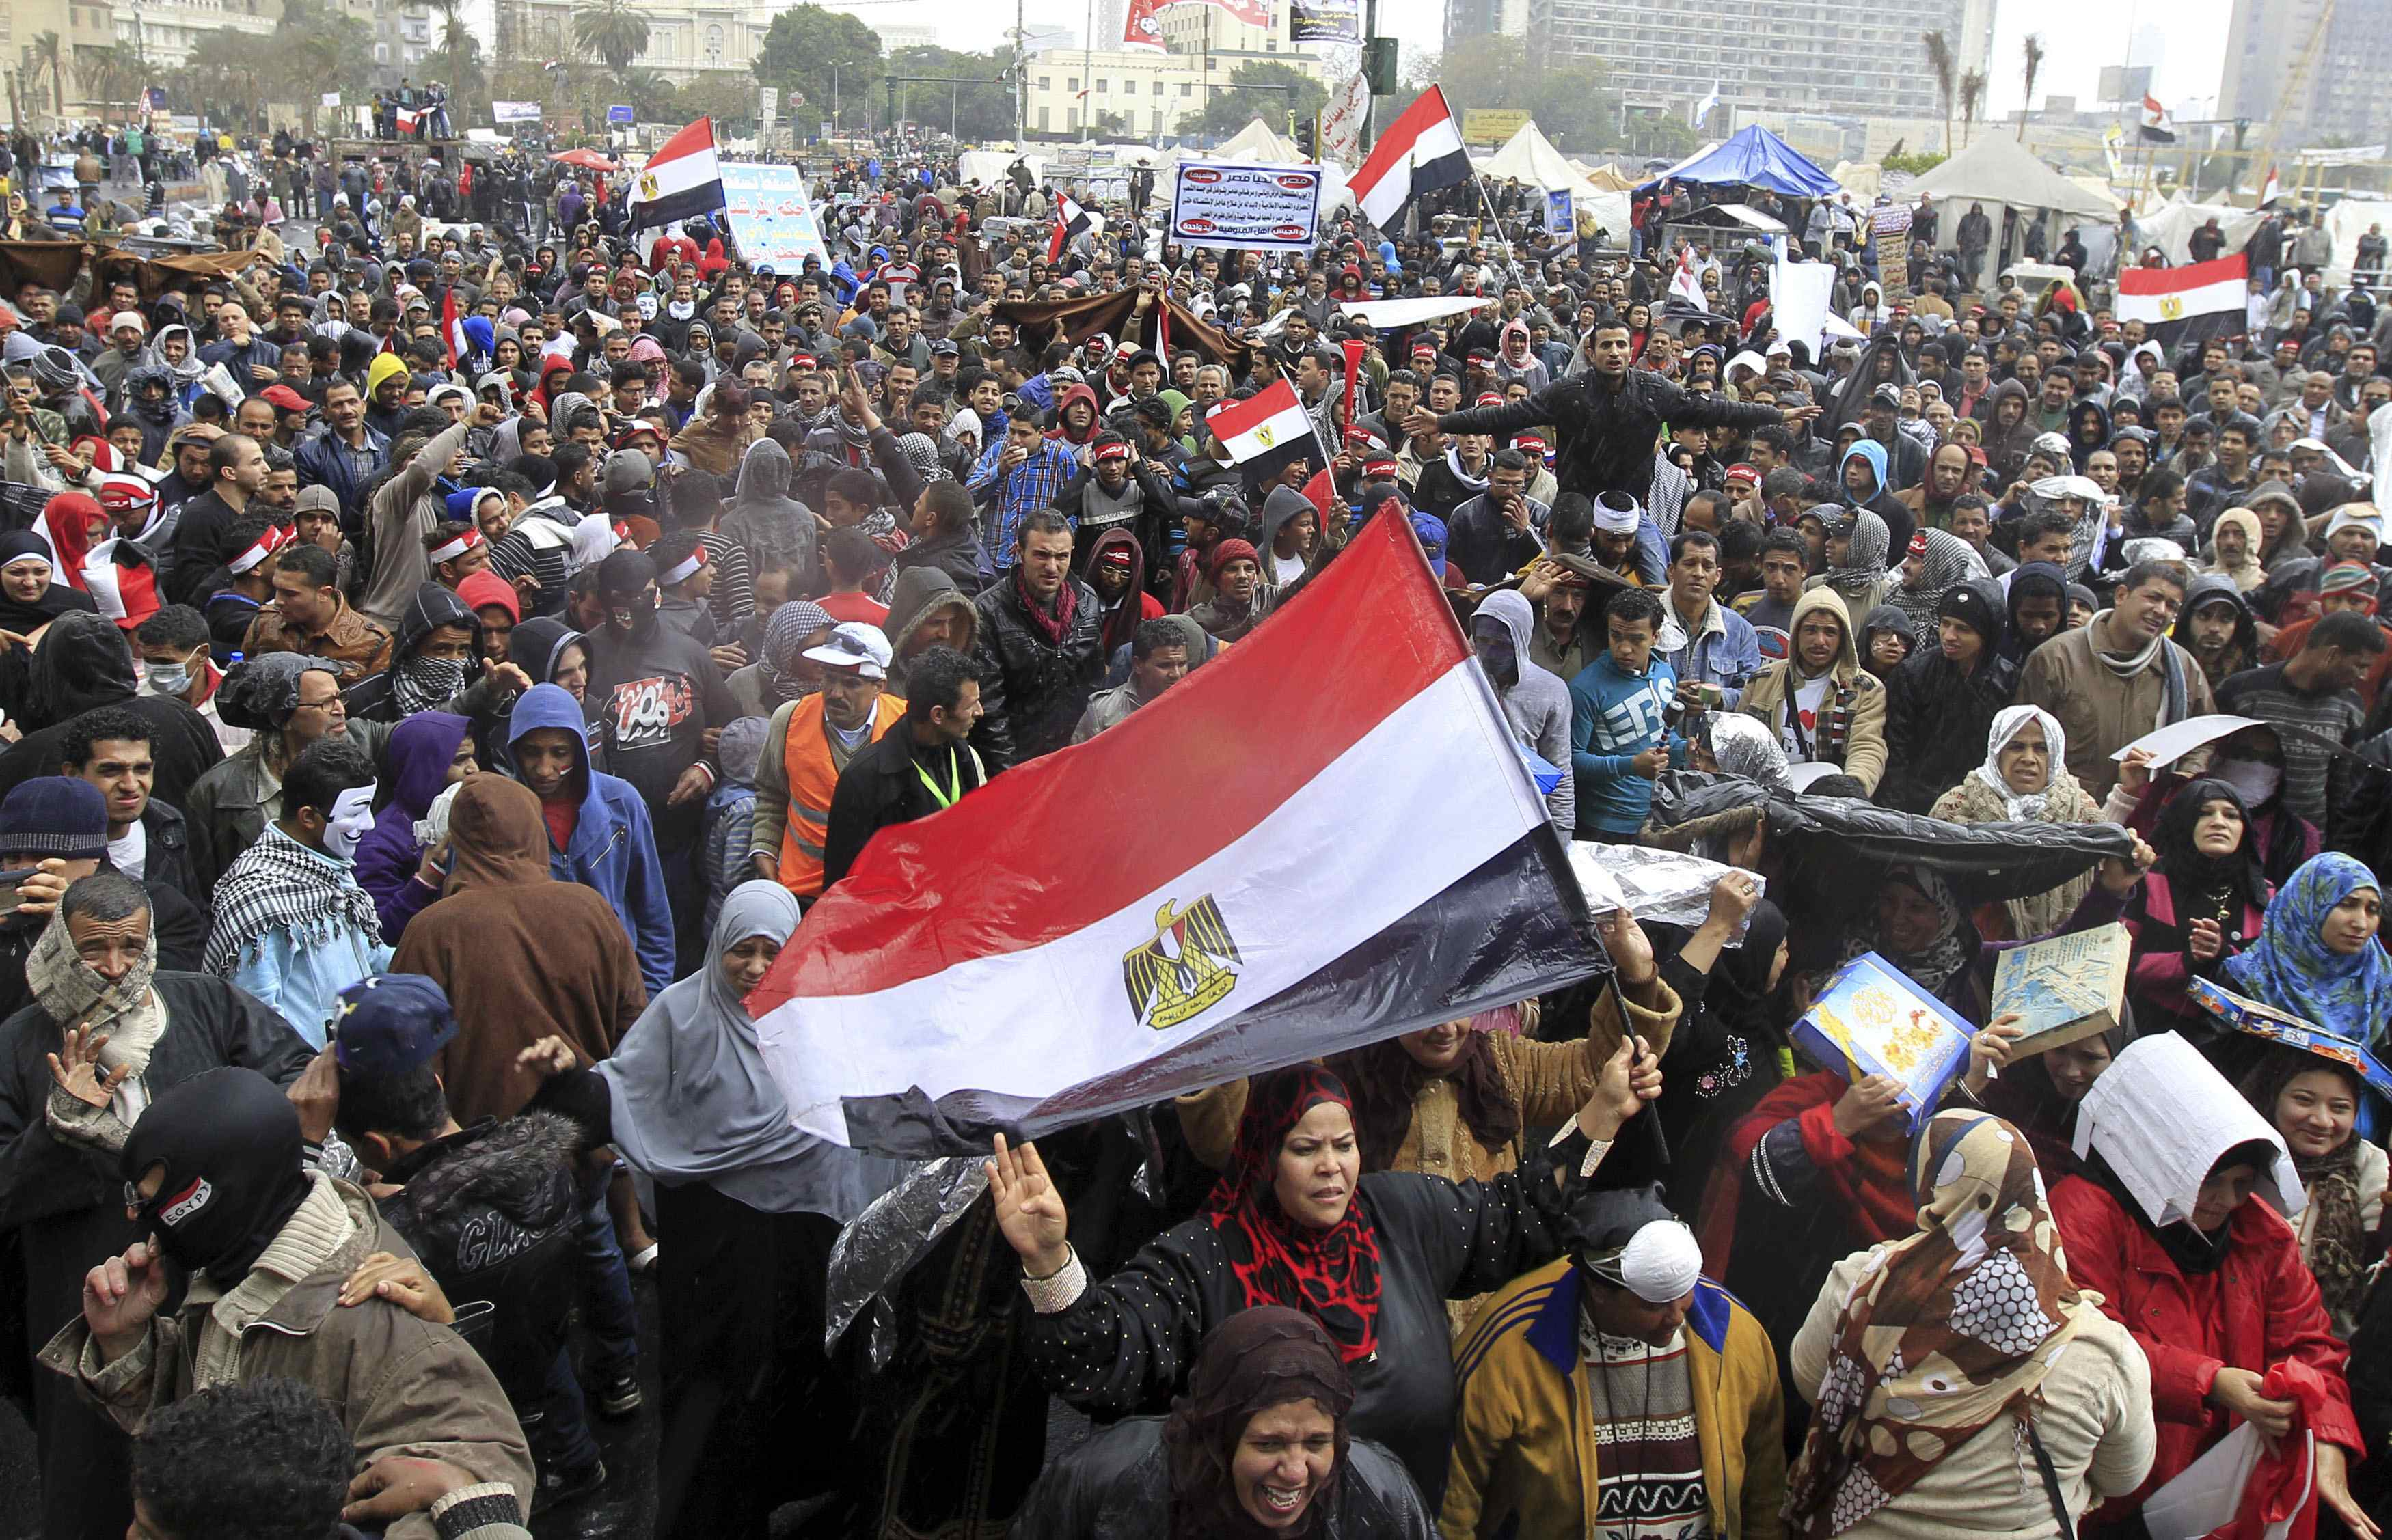 Breaking: Clashes erupt between security, protesters at presidential palace